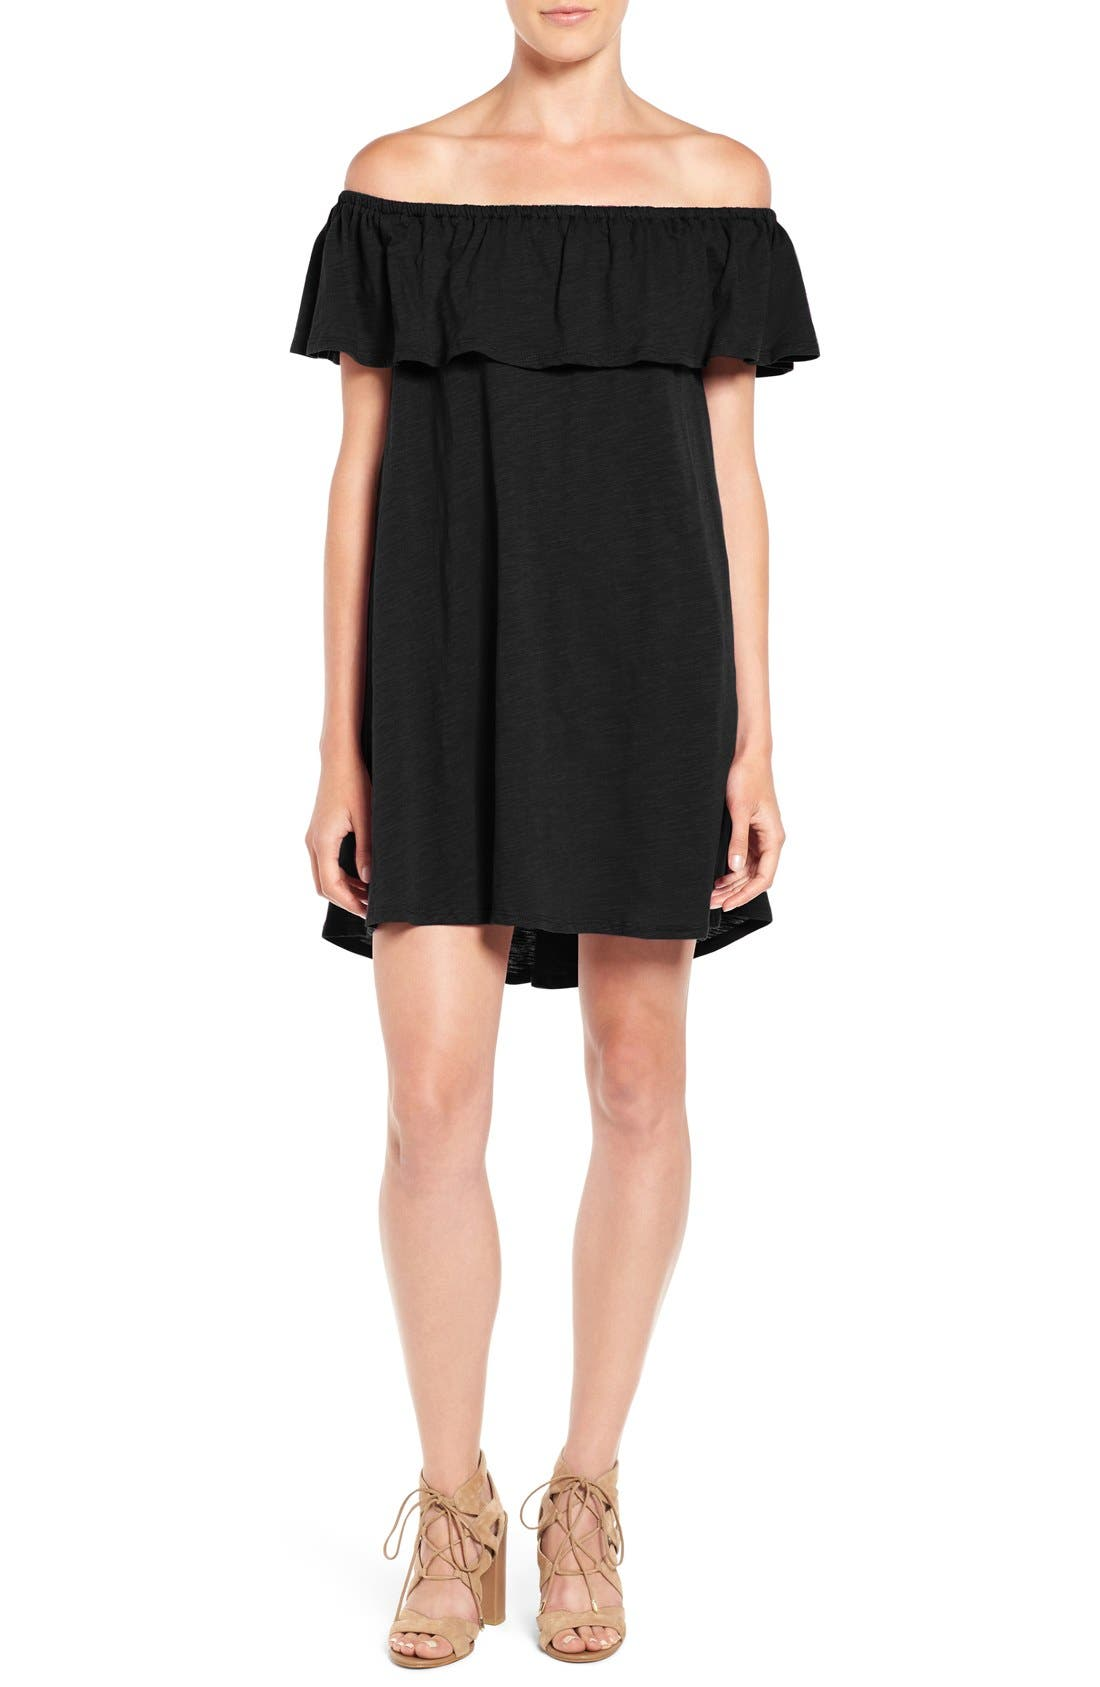 REBECCA MINKOFF 'Diosa' Cotton Off the Shoulder Dress, Main, color, 001